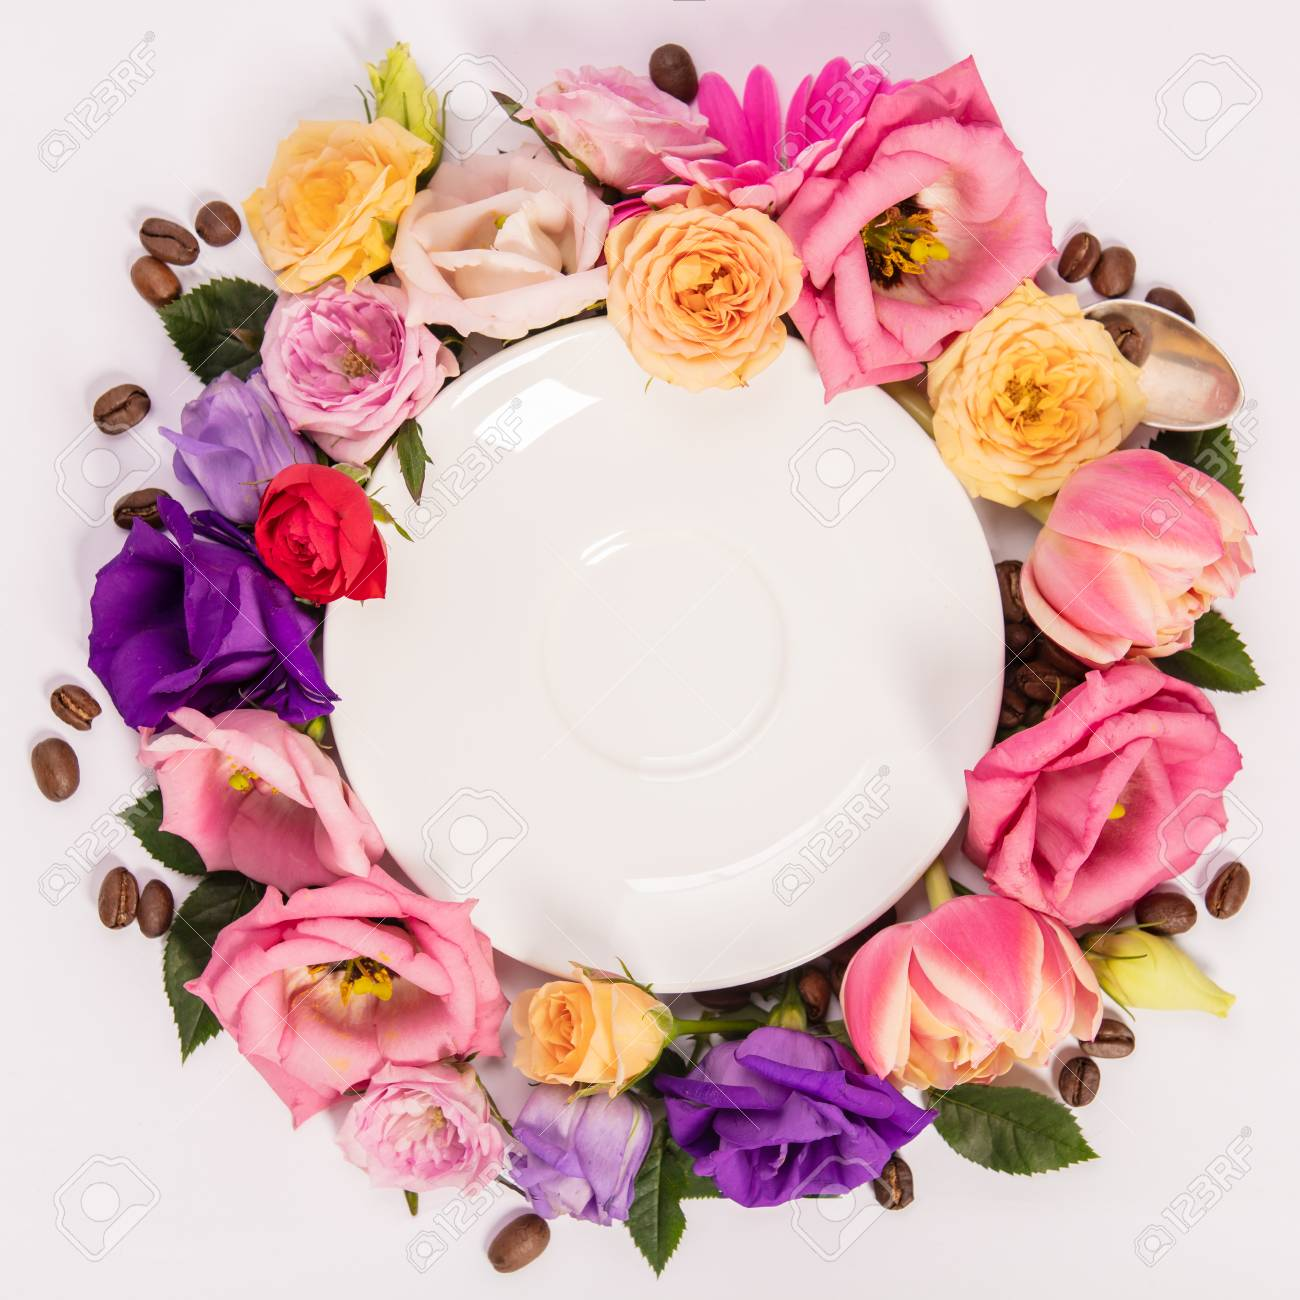 Still life composition with plate and flowers - 124680763